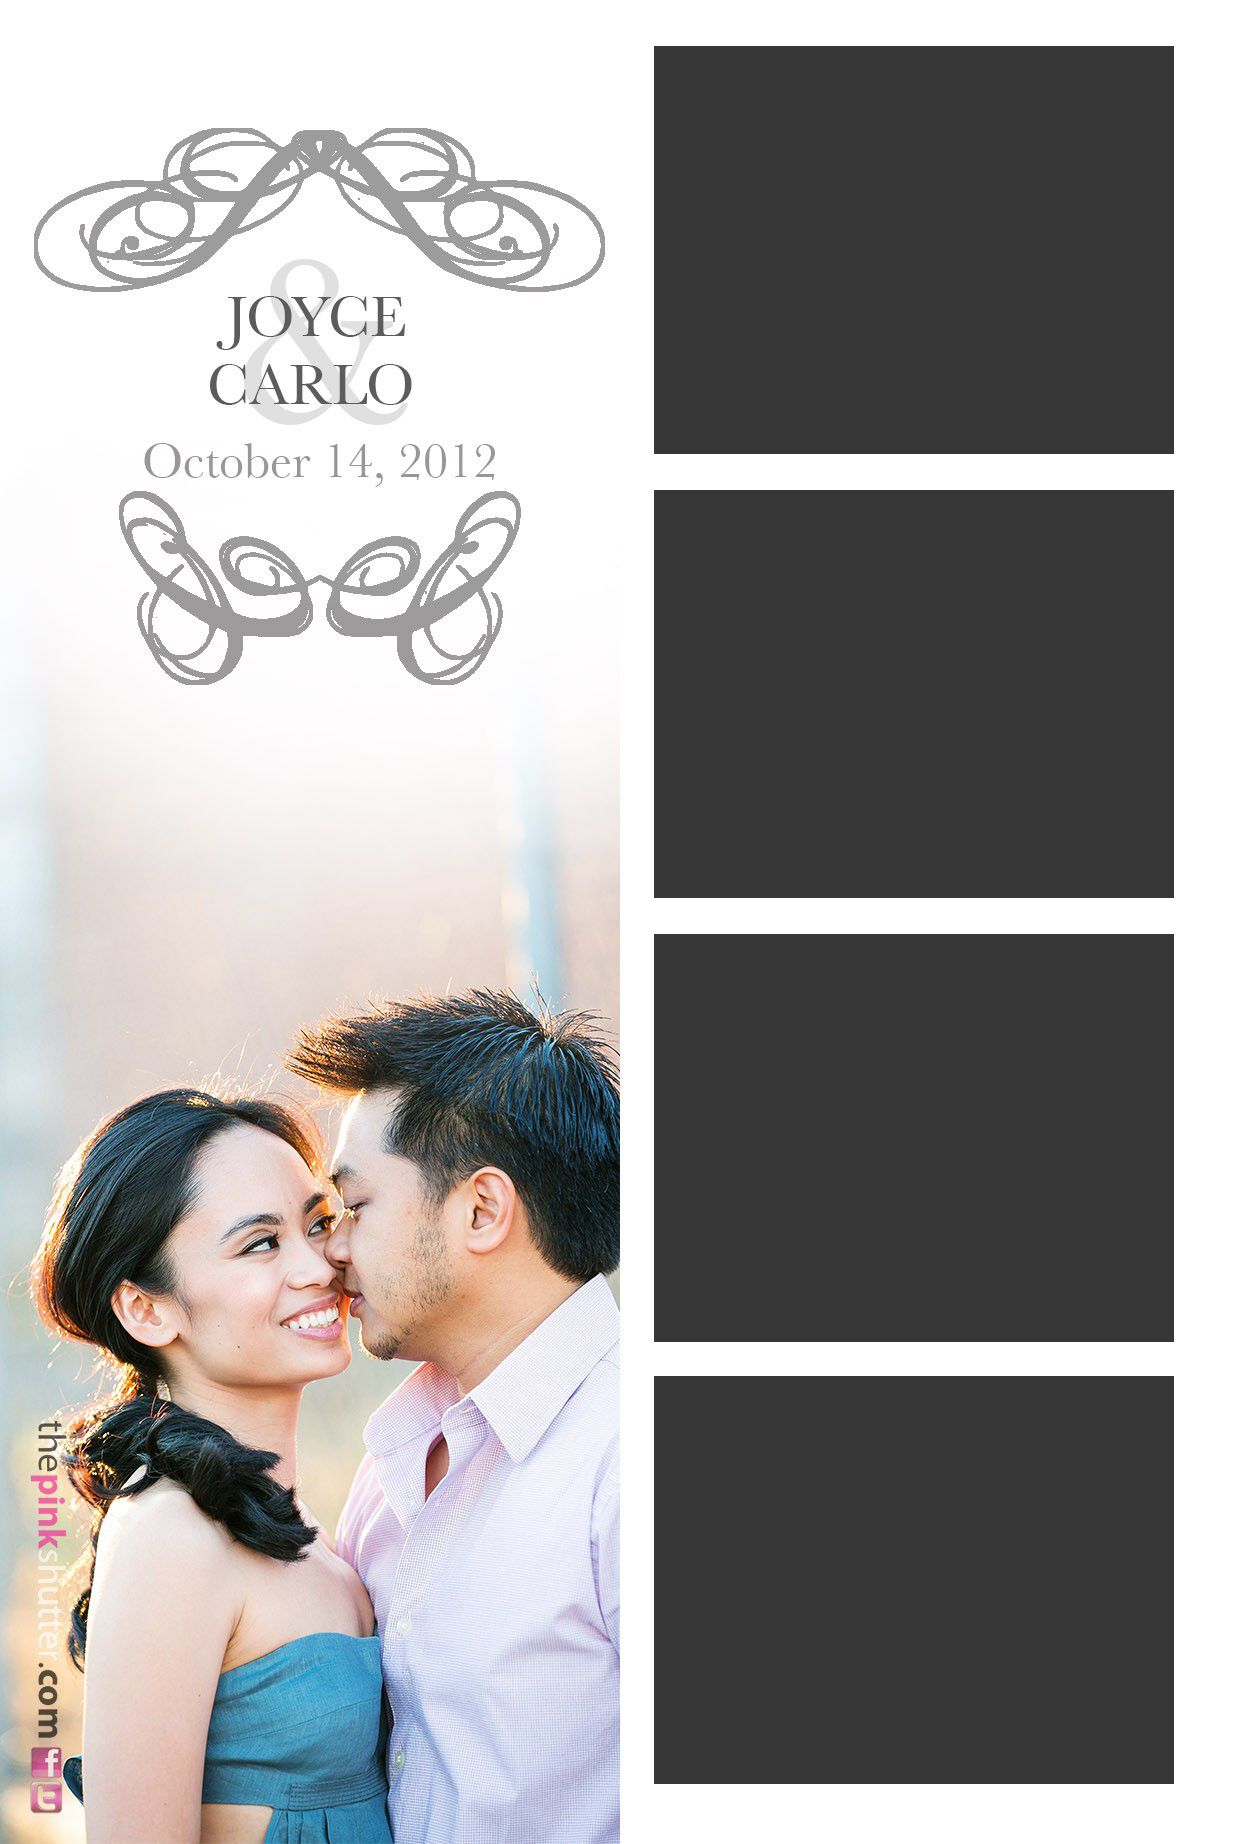 Photo Booth Layout Design Google Search Photo Booth Ideas